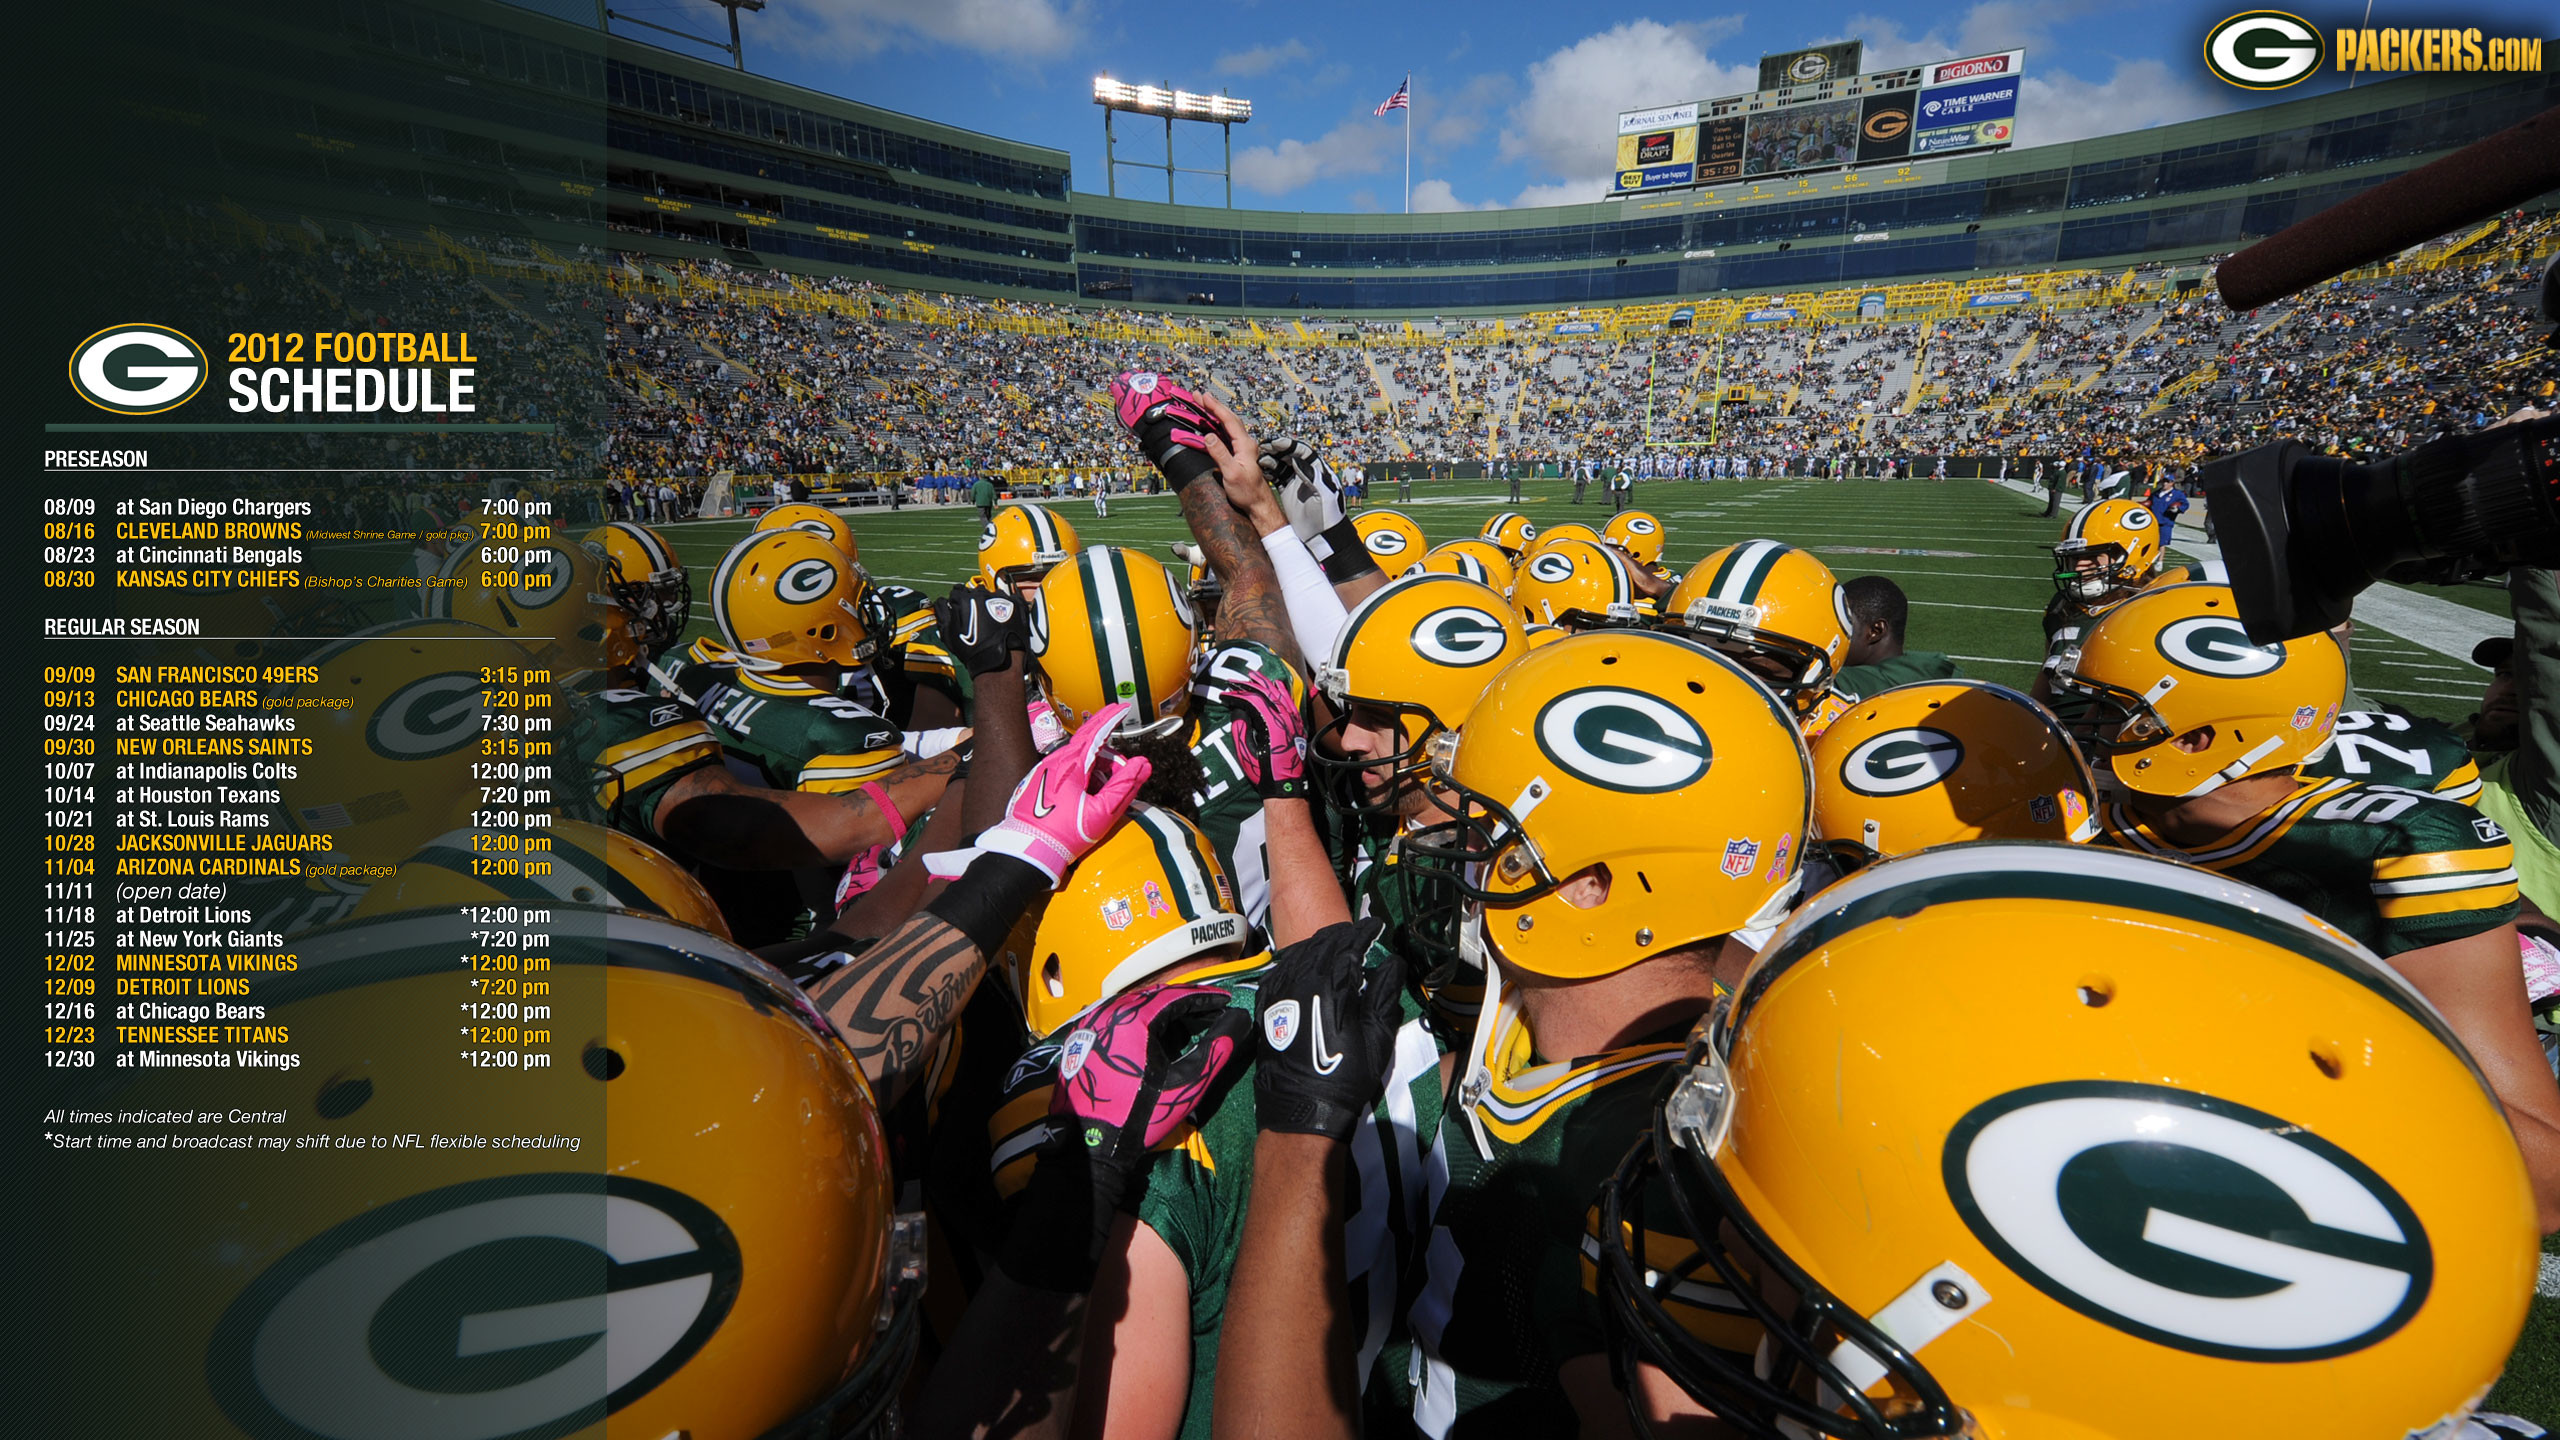 Packers.com | Wallpapers: 2012 Miscellaneous